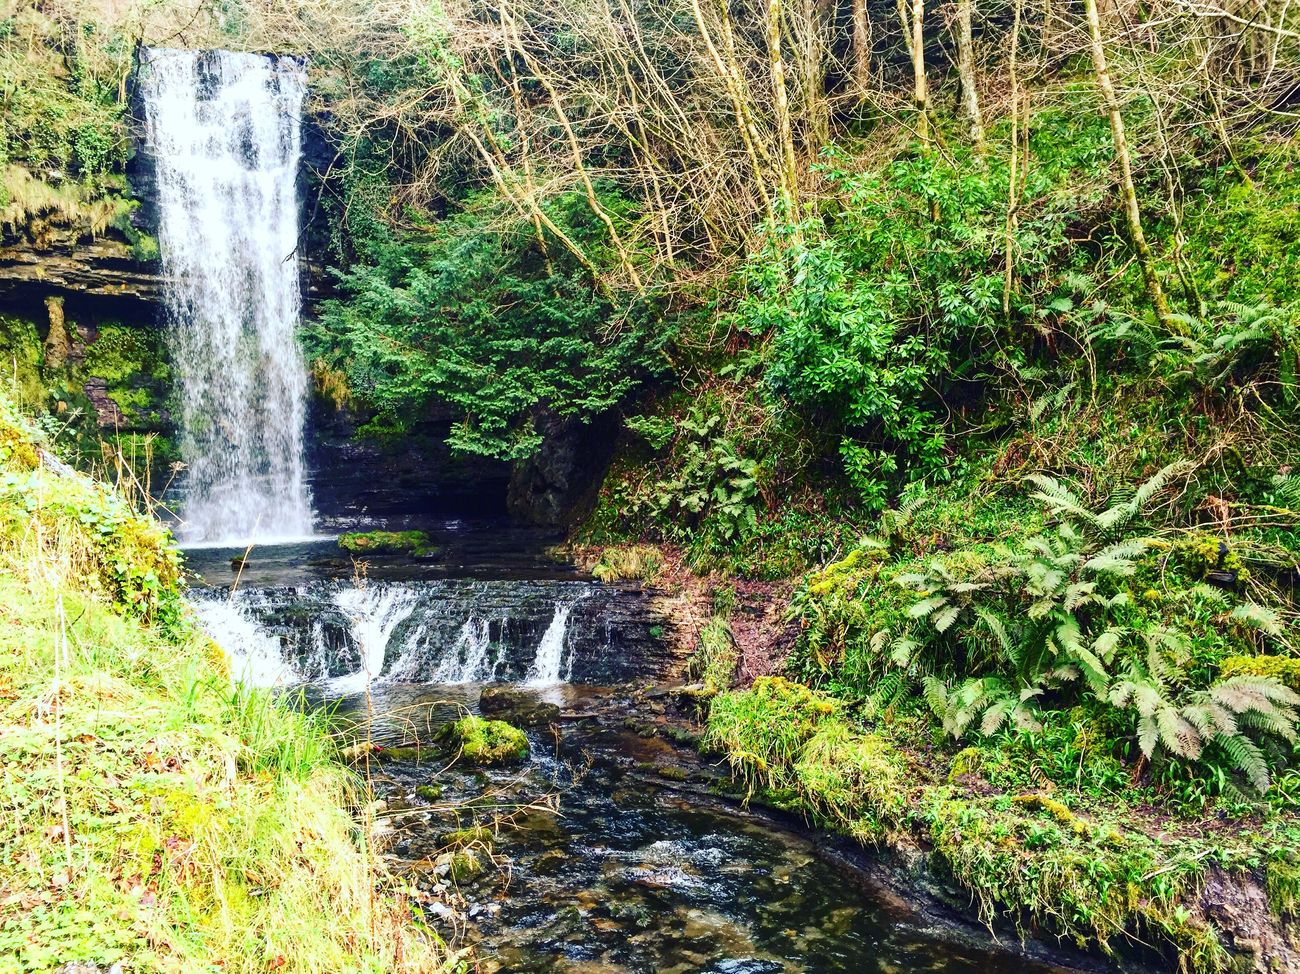 Glencar Waterfall Waterfall Stream County Leitrim Republic Of Ireland Ireland Glencar Waterfall